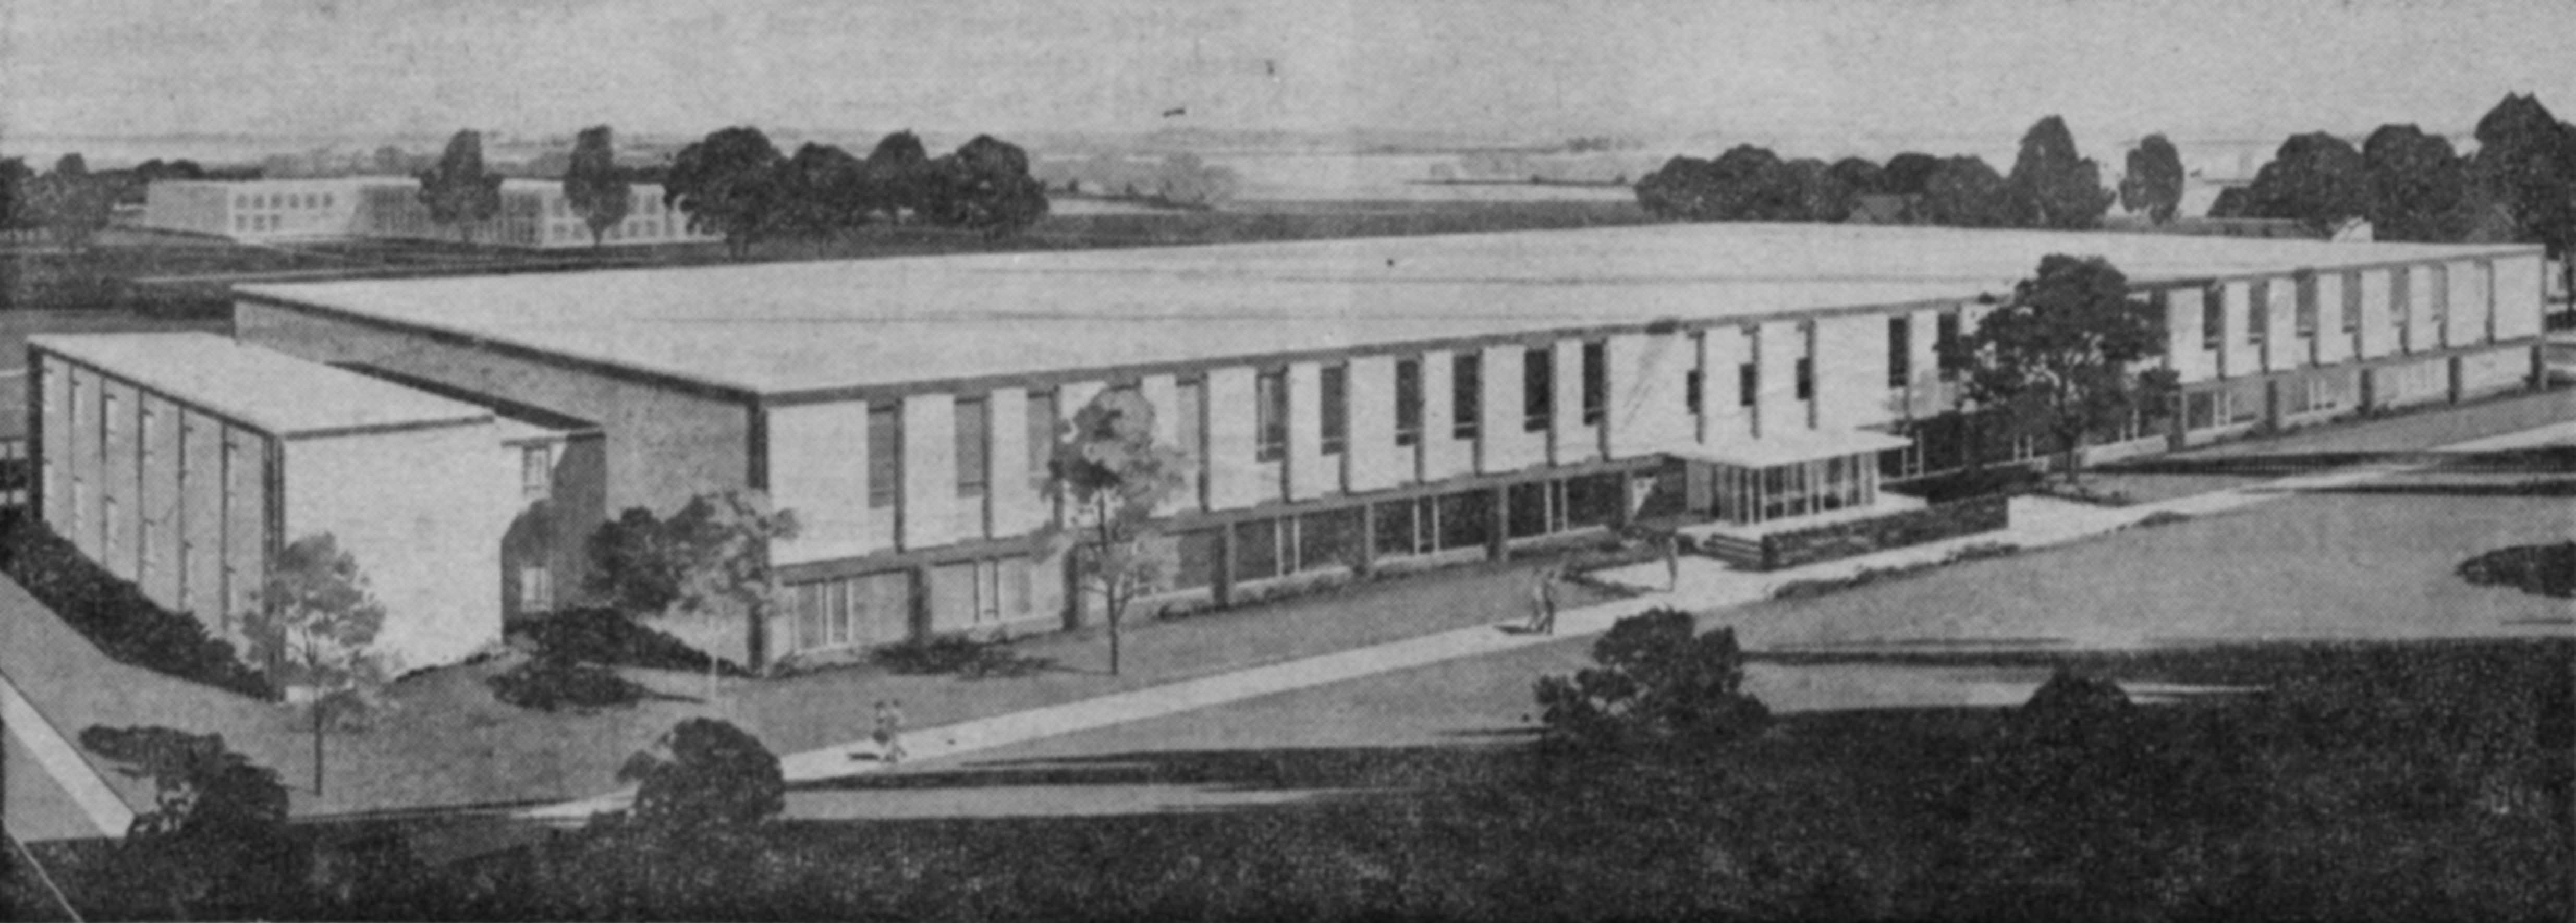 Architect's rendering of Headley Hall